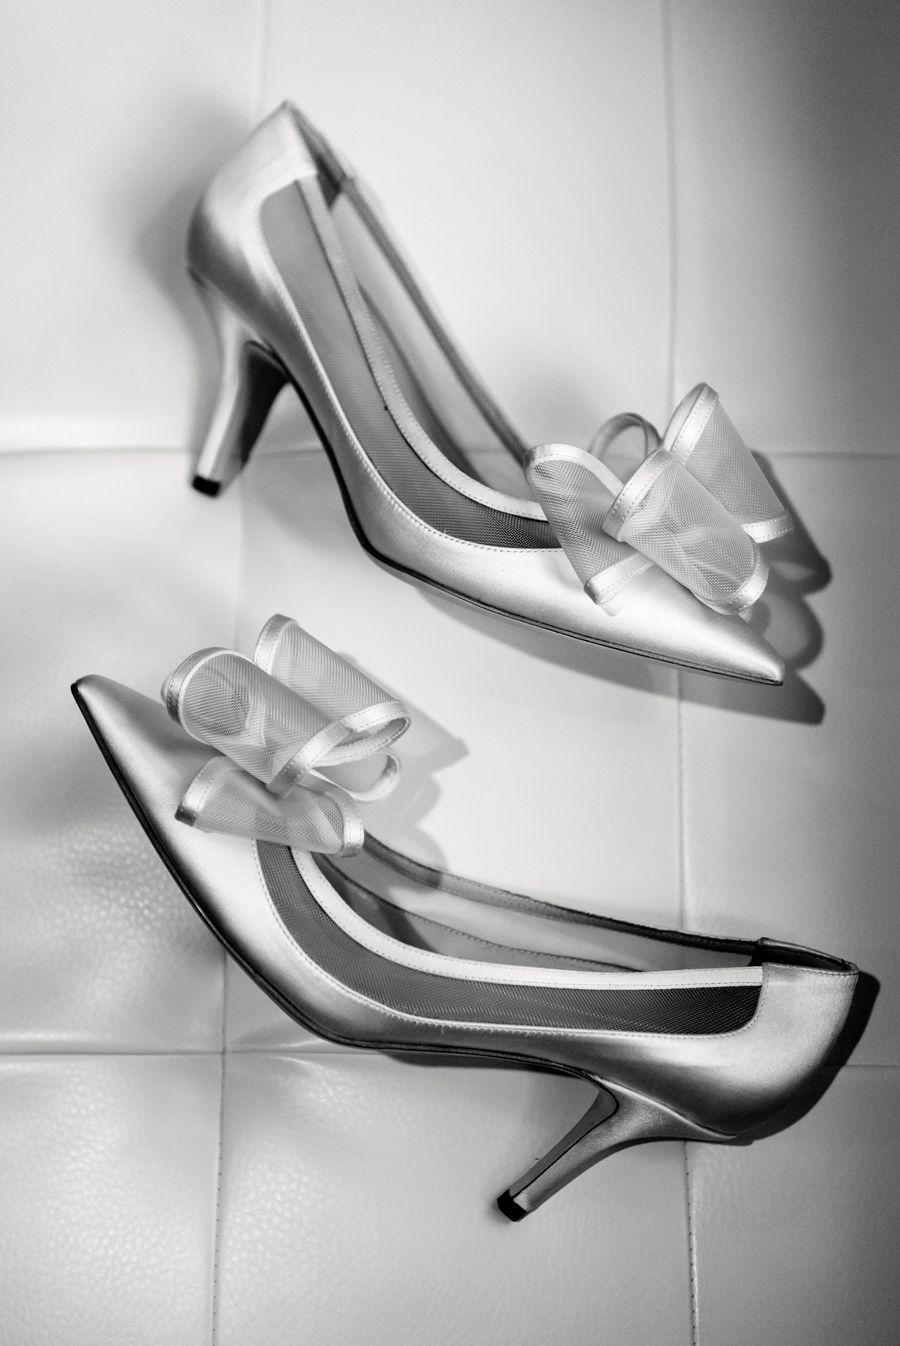 Classic bridal shoes with a bow: Photography : Ryon:Lockhart Photography - http://www.ryonlockhart.com/